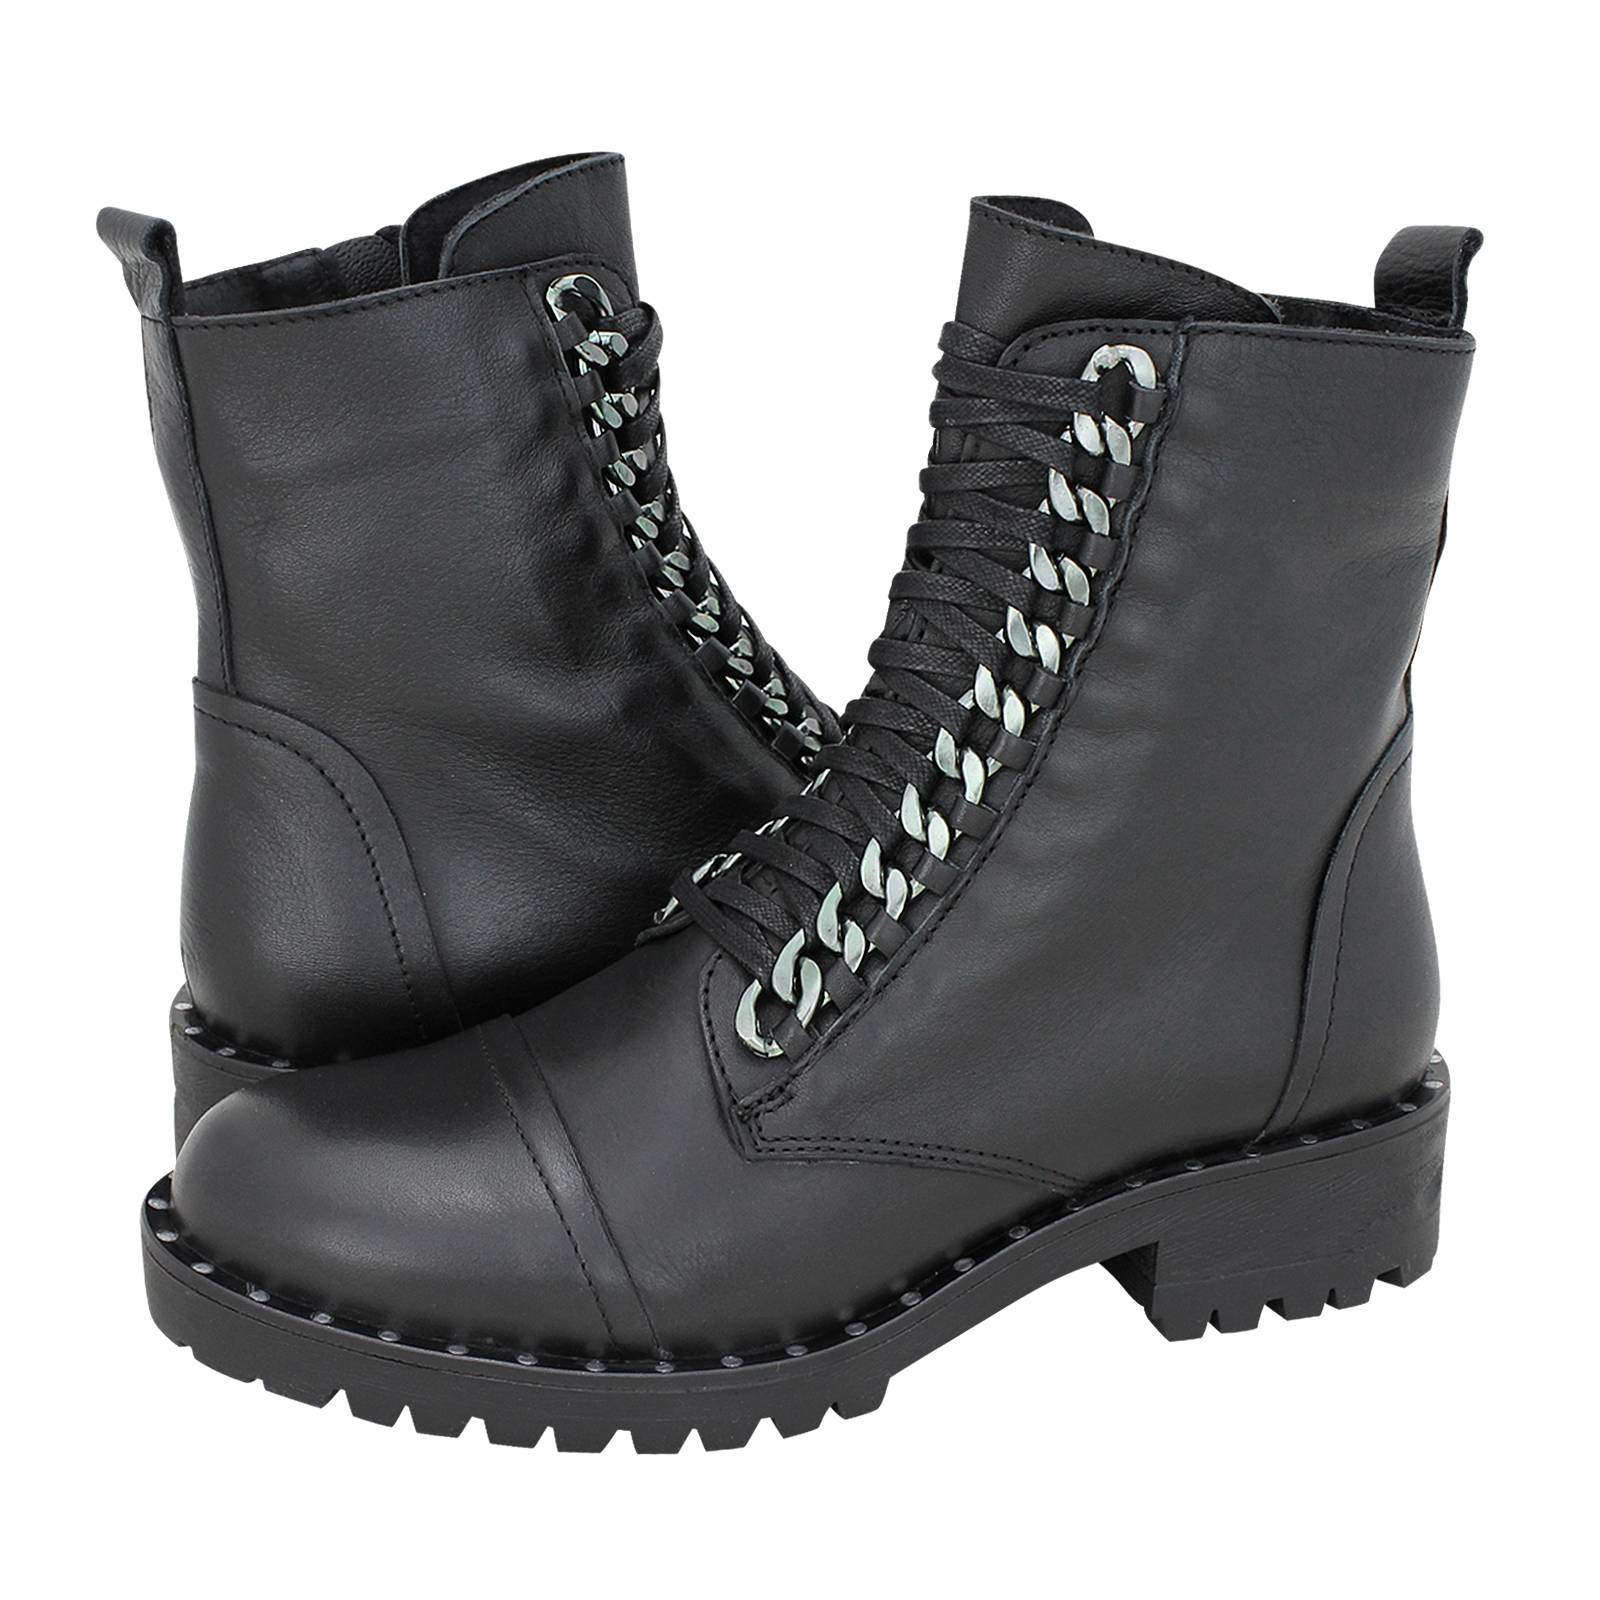 Tassach - Esthissis Women s low boots made of leather - Gianna ... 1df2983cad2